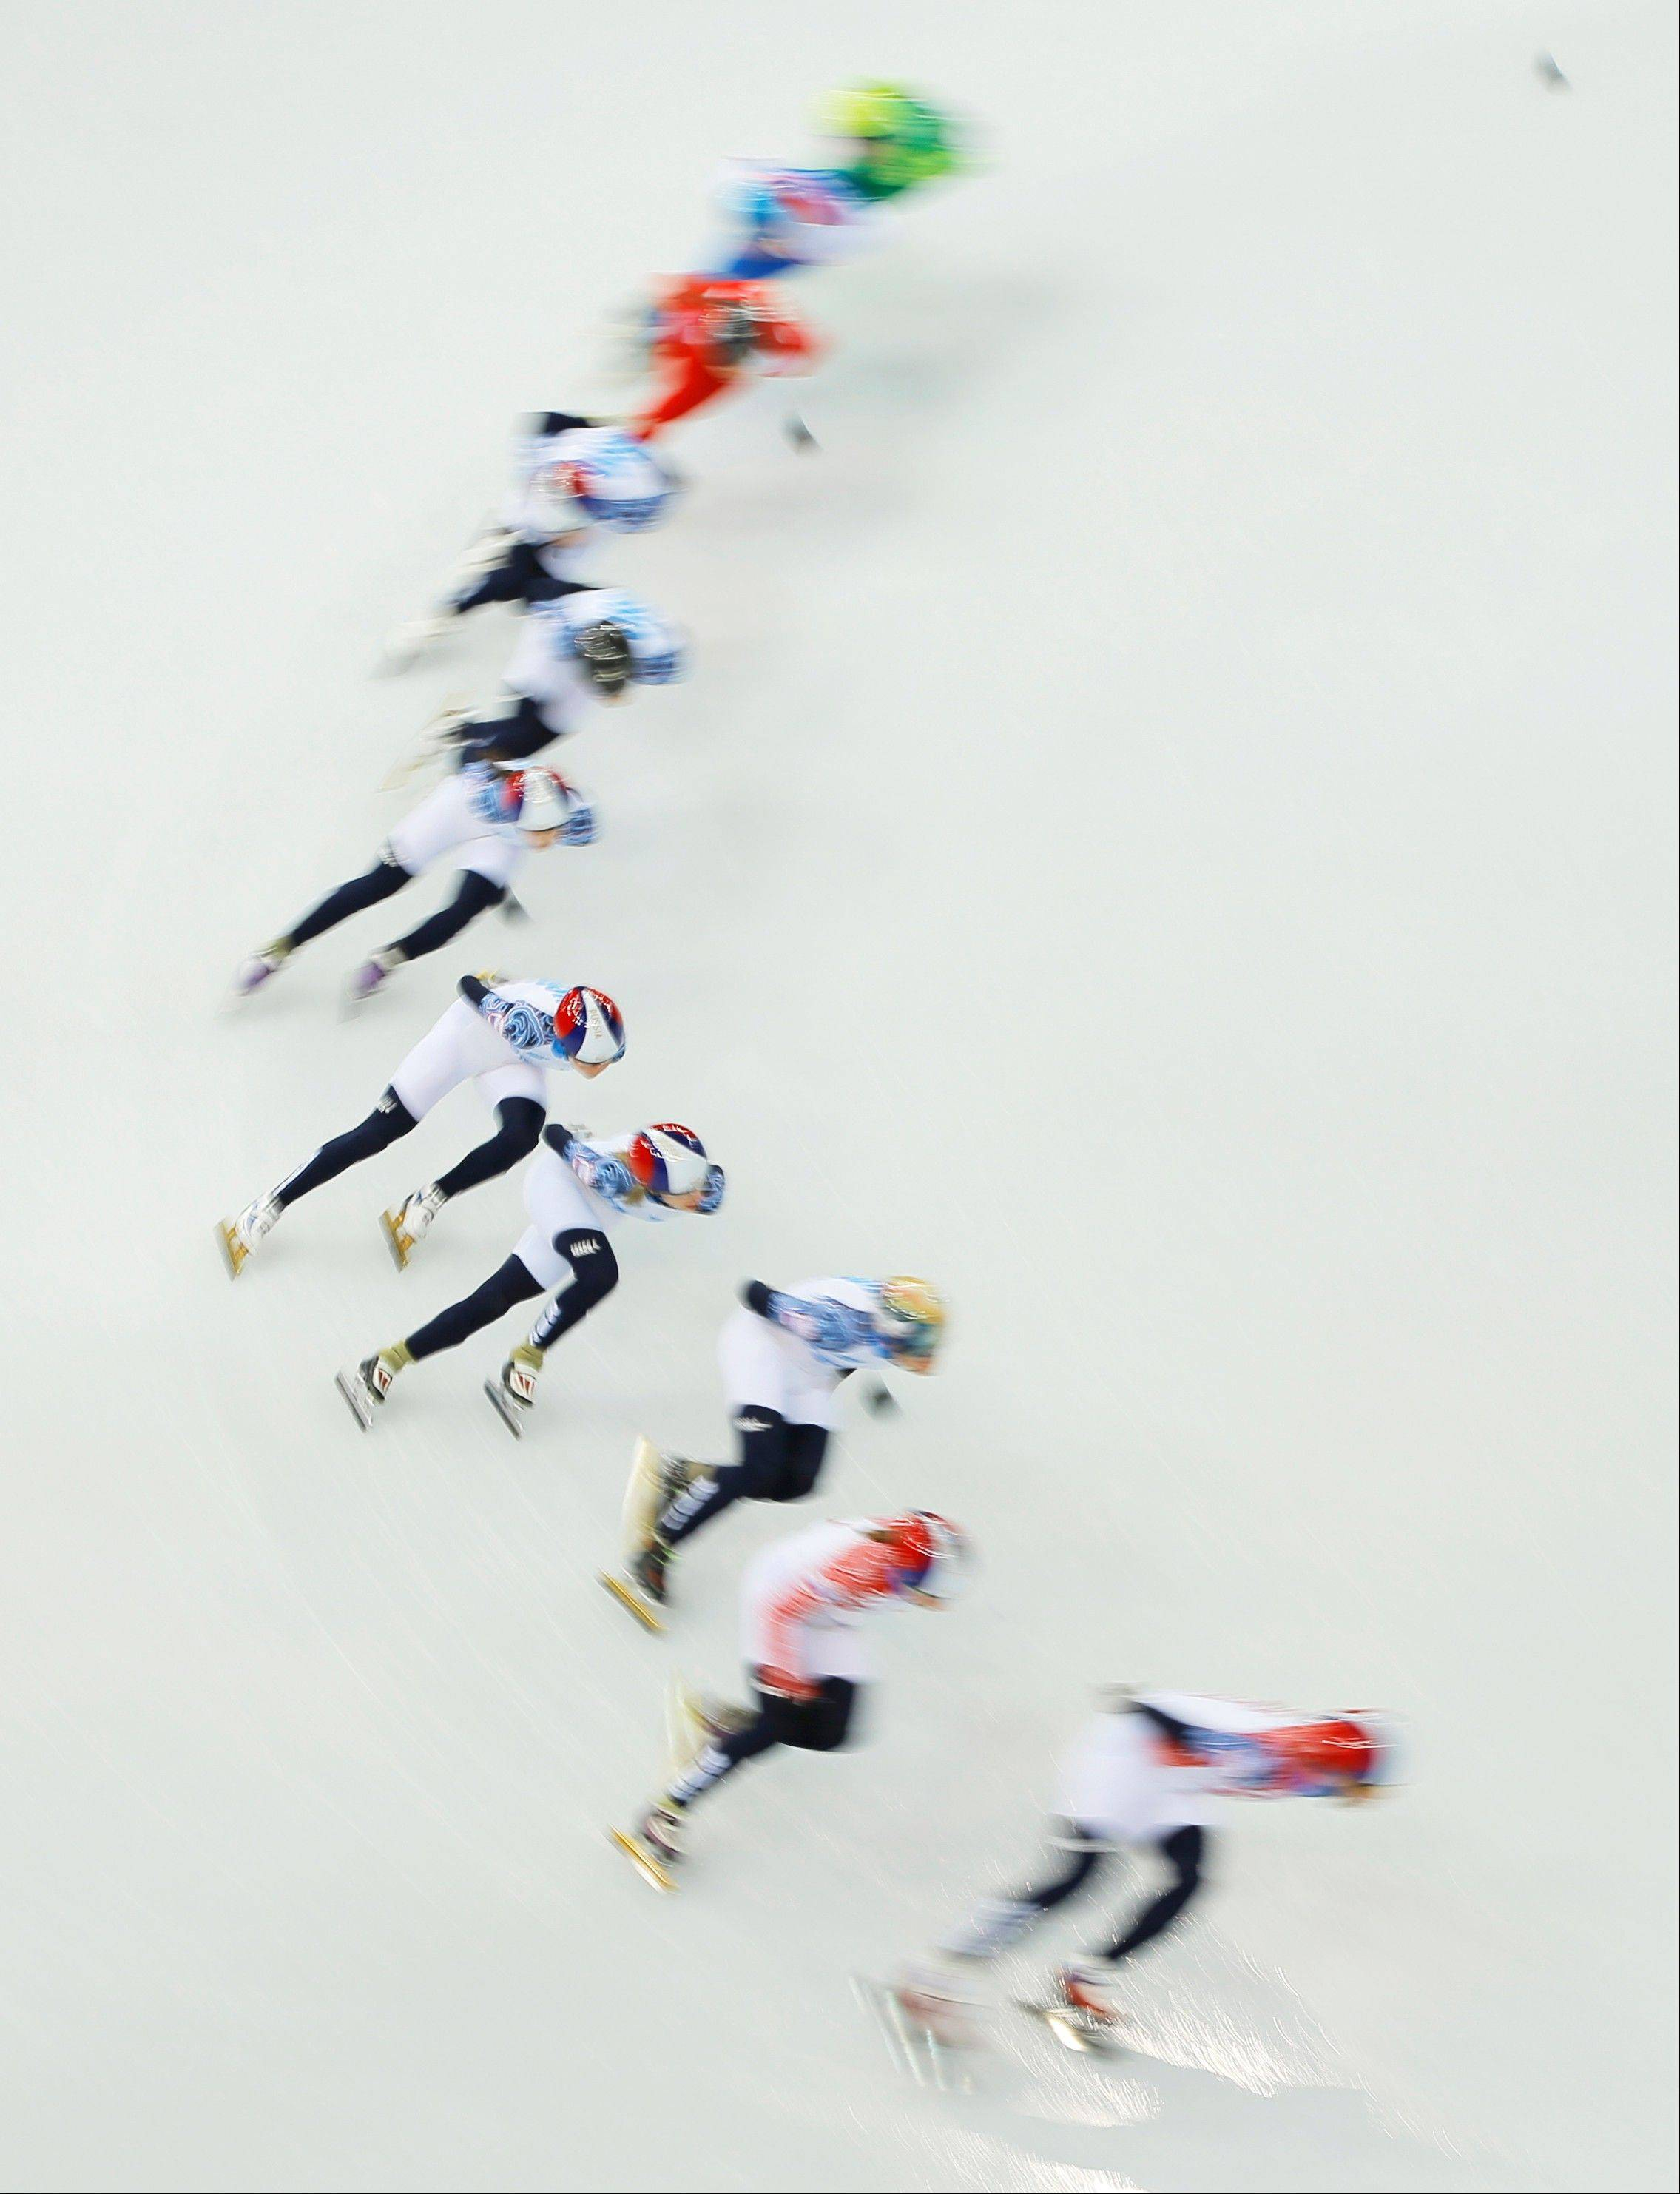 Skaters from Russia, Poland and Lithuania practice during a short track speedskating practice session at the Iceberg Skating Palace ahead of the 2014 Winter Olympics, Thursday, Feb. 6, 2014, in Sochi, Russia.